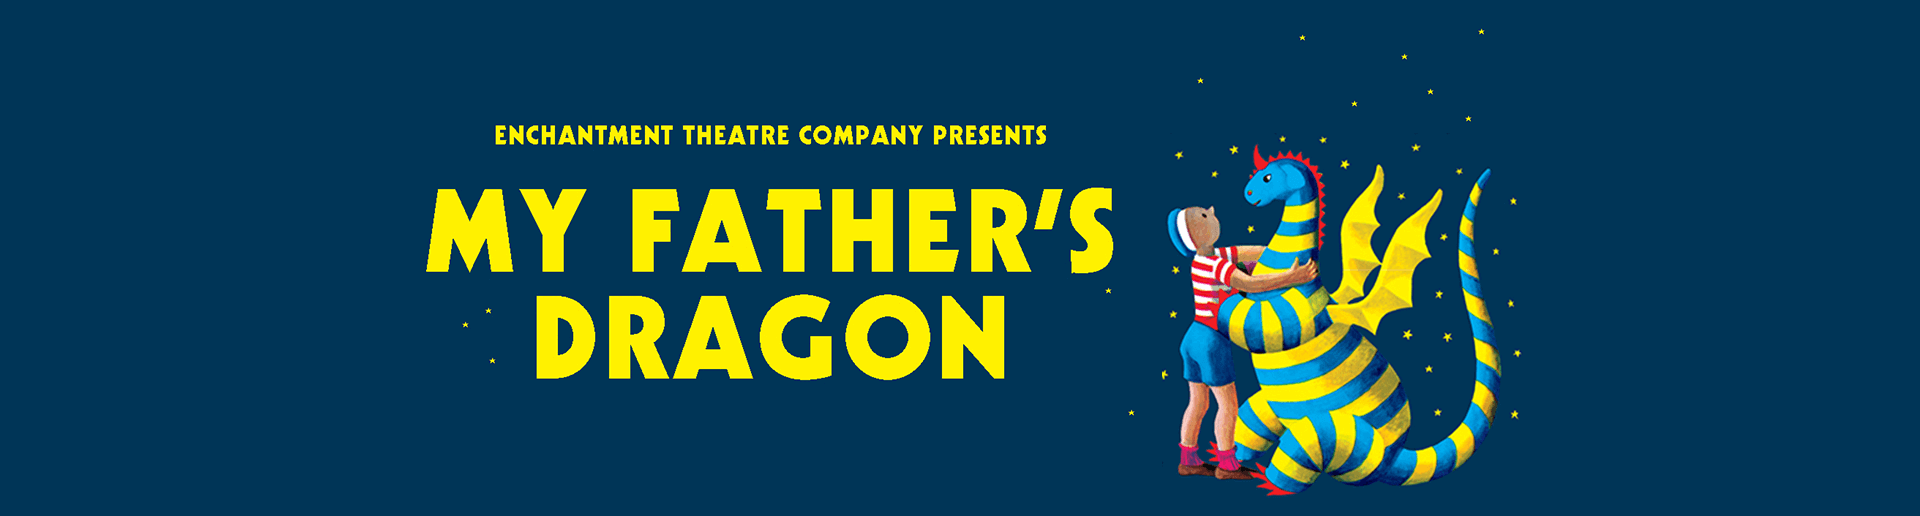 "Enchantment Theatre Company Presents ""My Father's Dragon"" based on the beloved stories by Ruth Stiles Gannett"